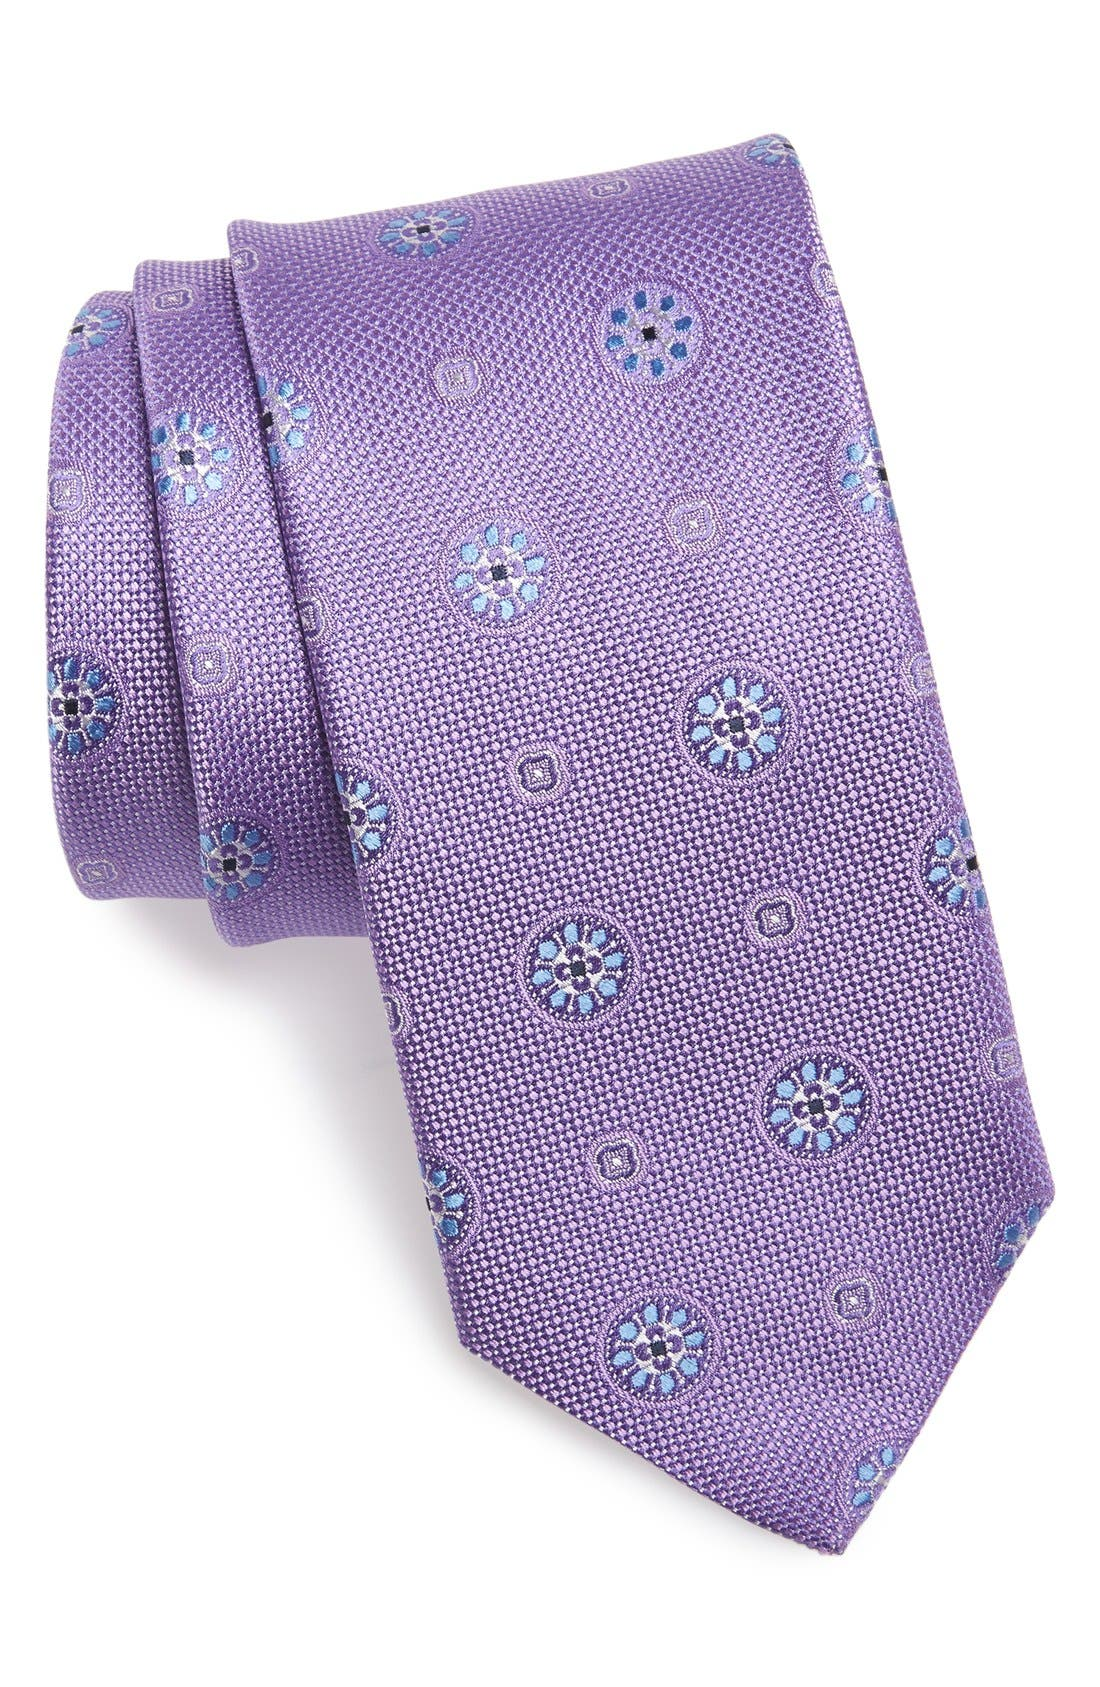 Medallion Silk Tie,                             Main thumbnail 1, color,                             Lilac